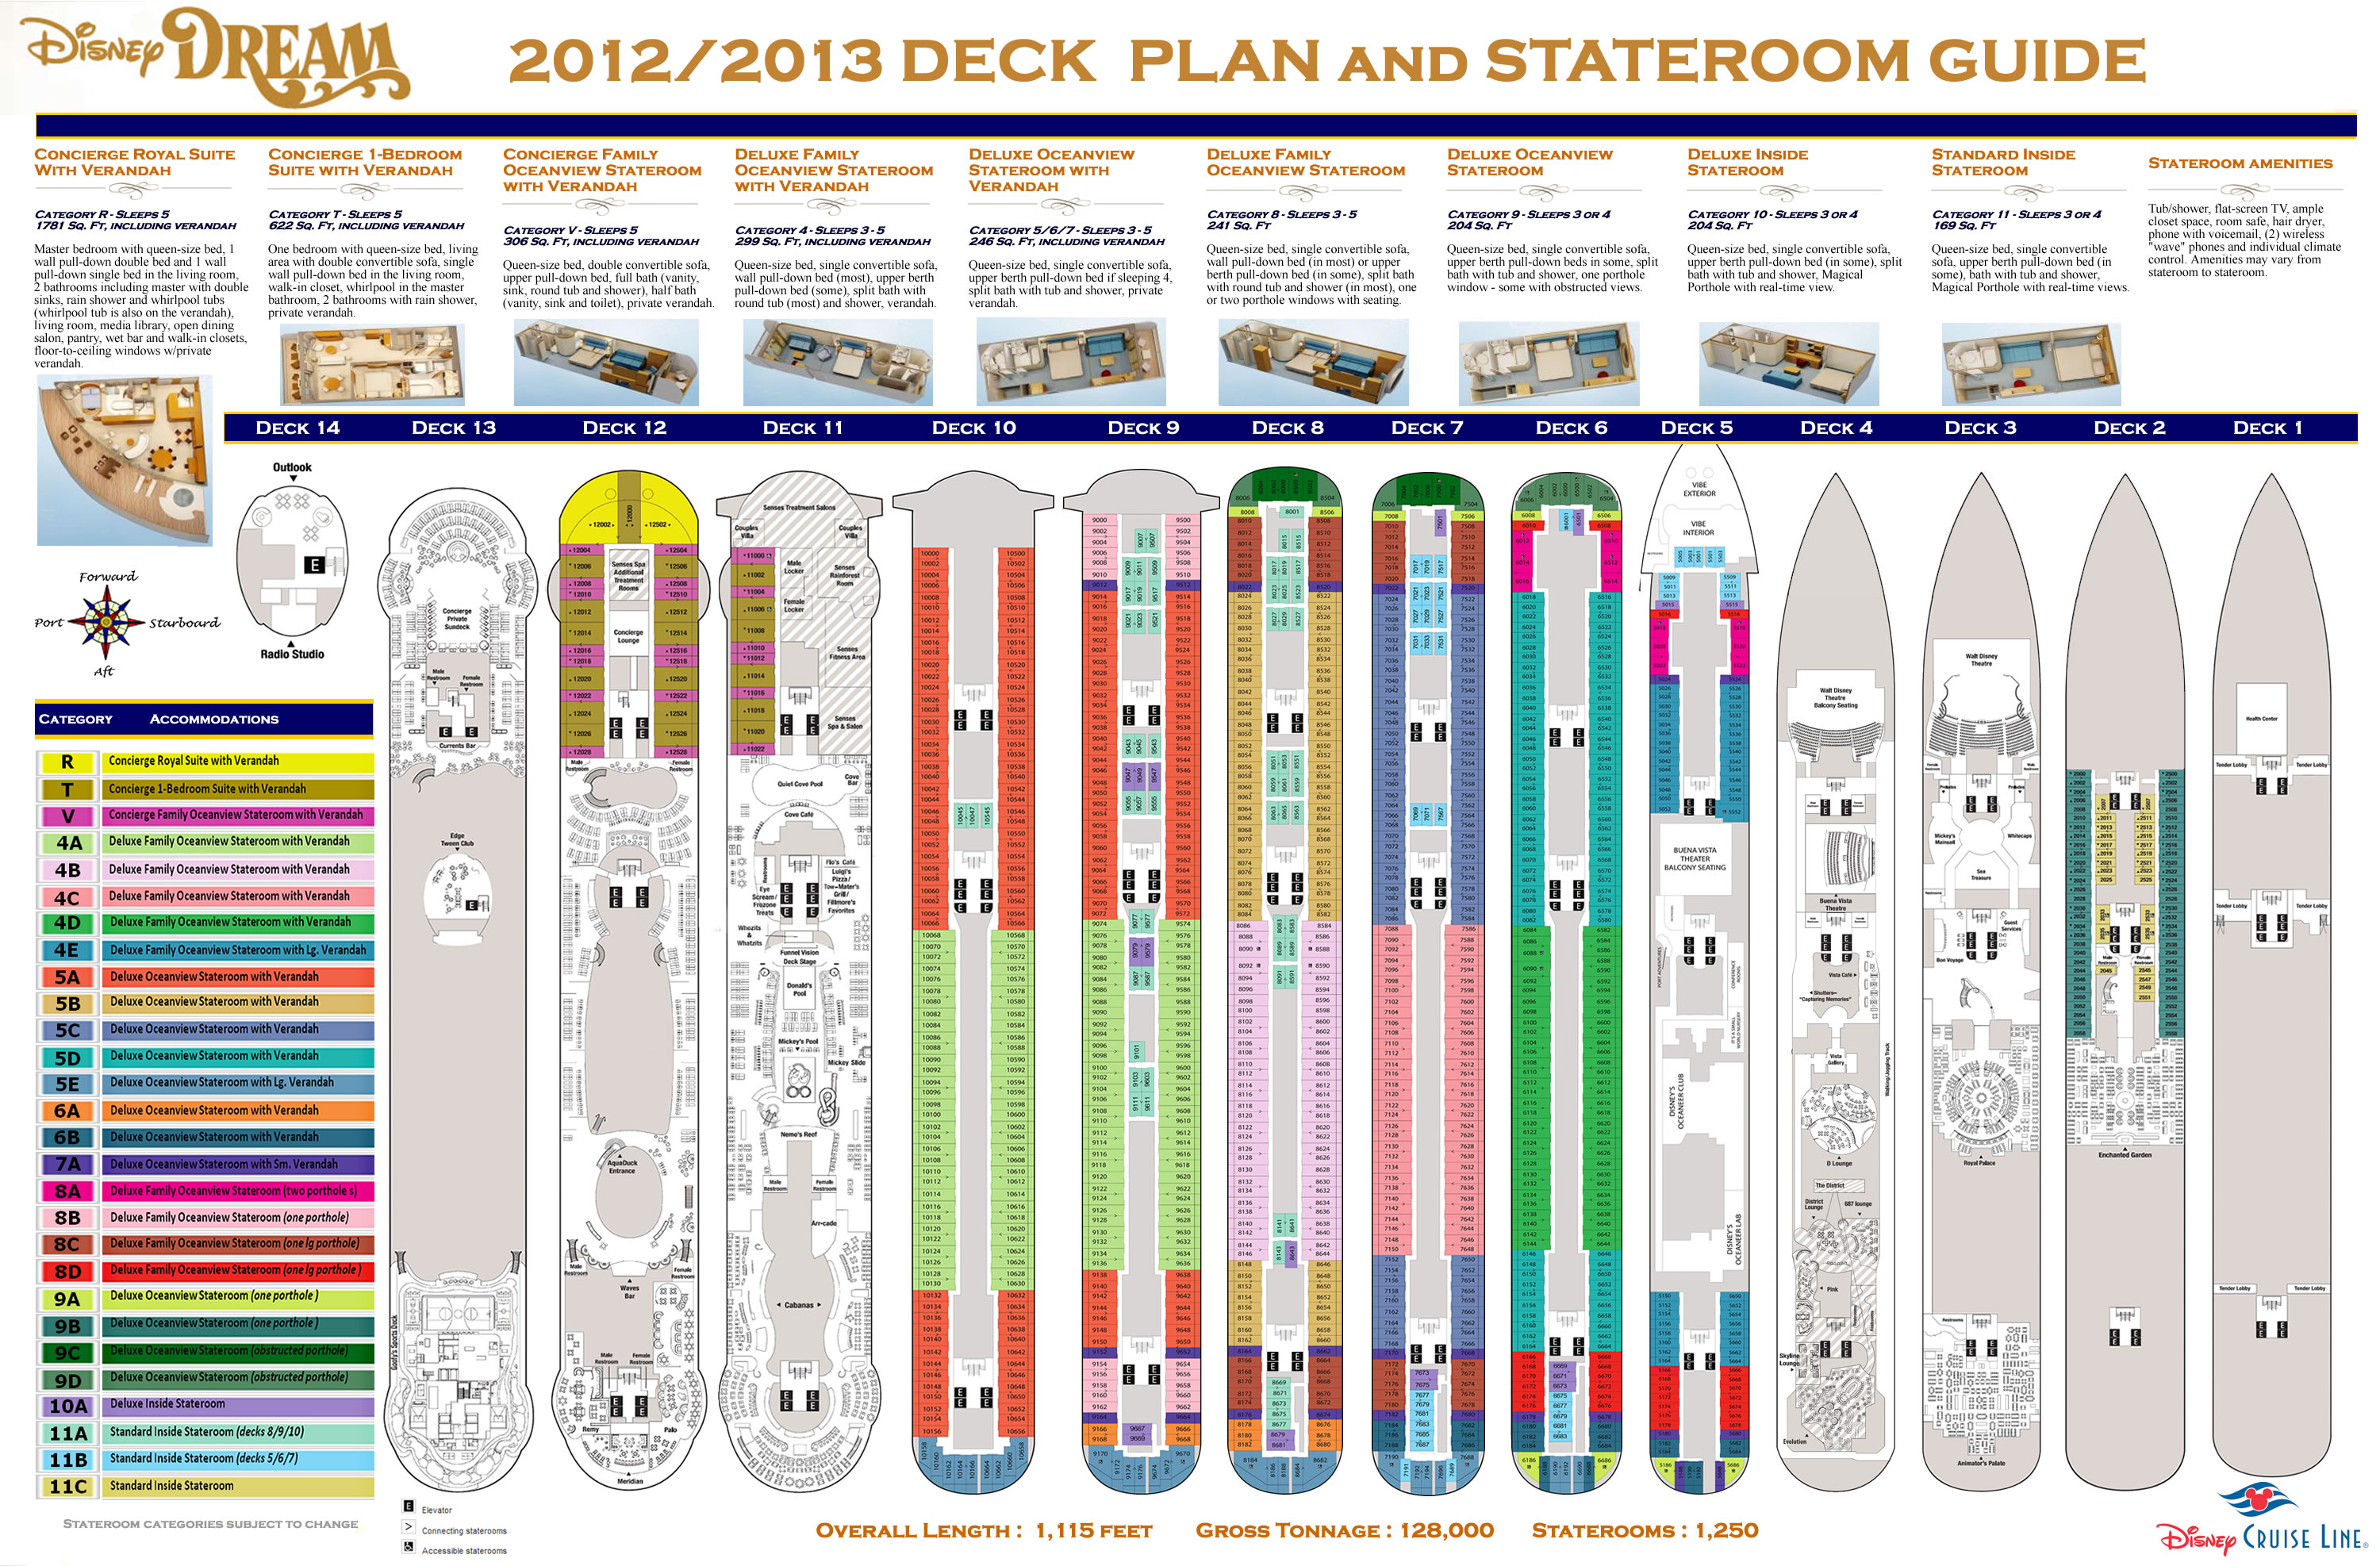 Disney-dream-deck-plans-2012.jpg